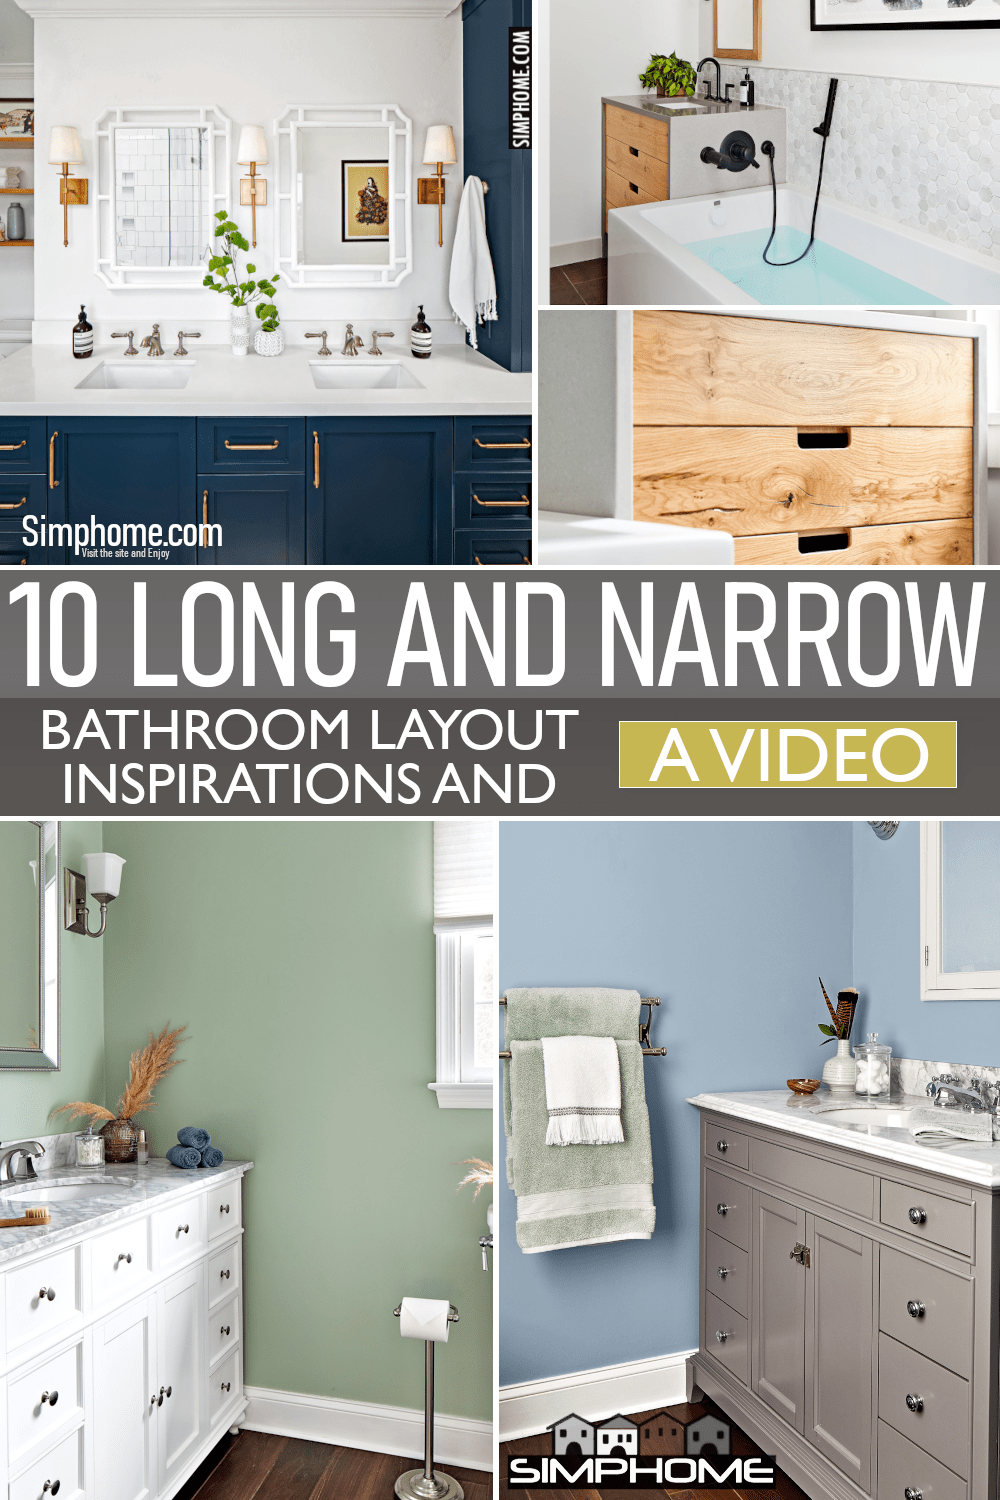 10 Long and Narrow Bathroom Layout Ideas via Simphome.comFeatured